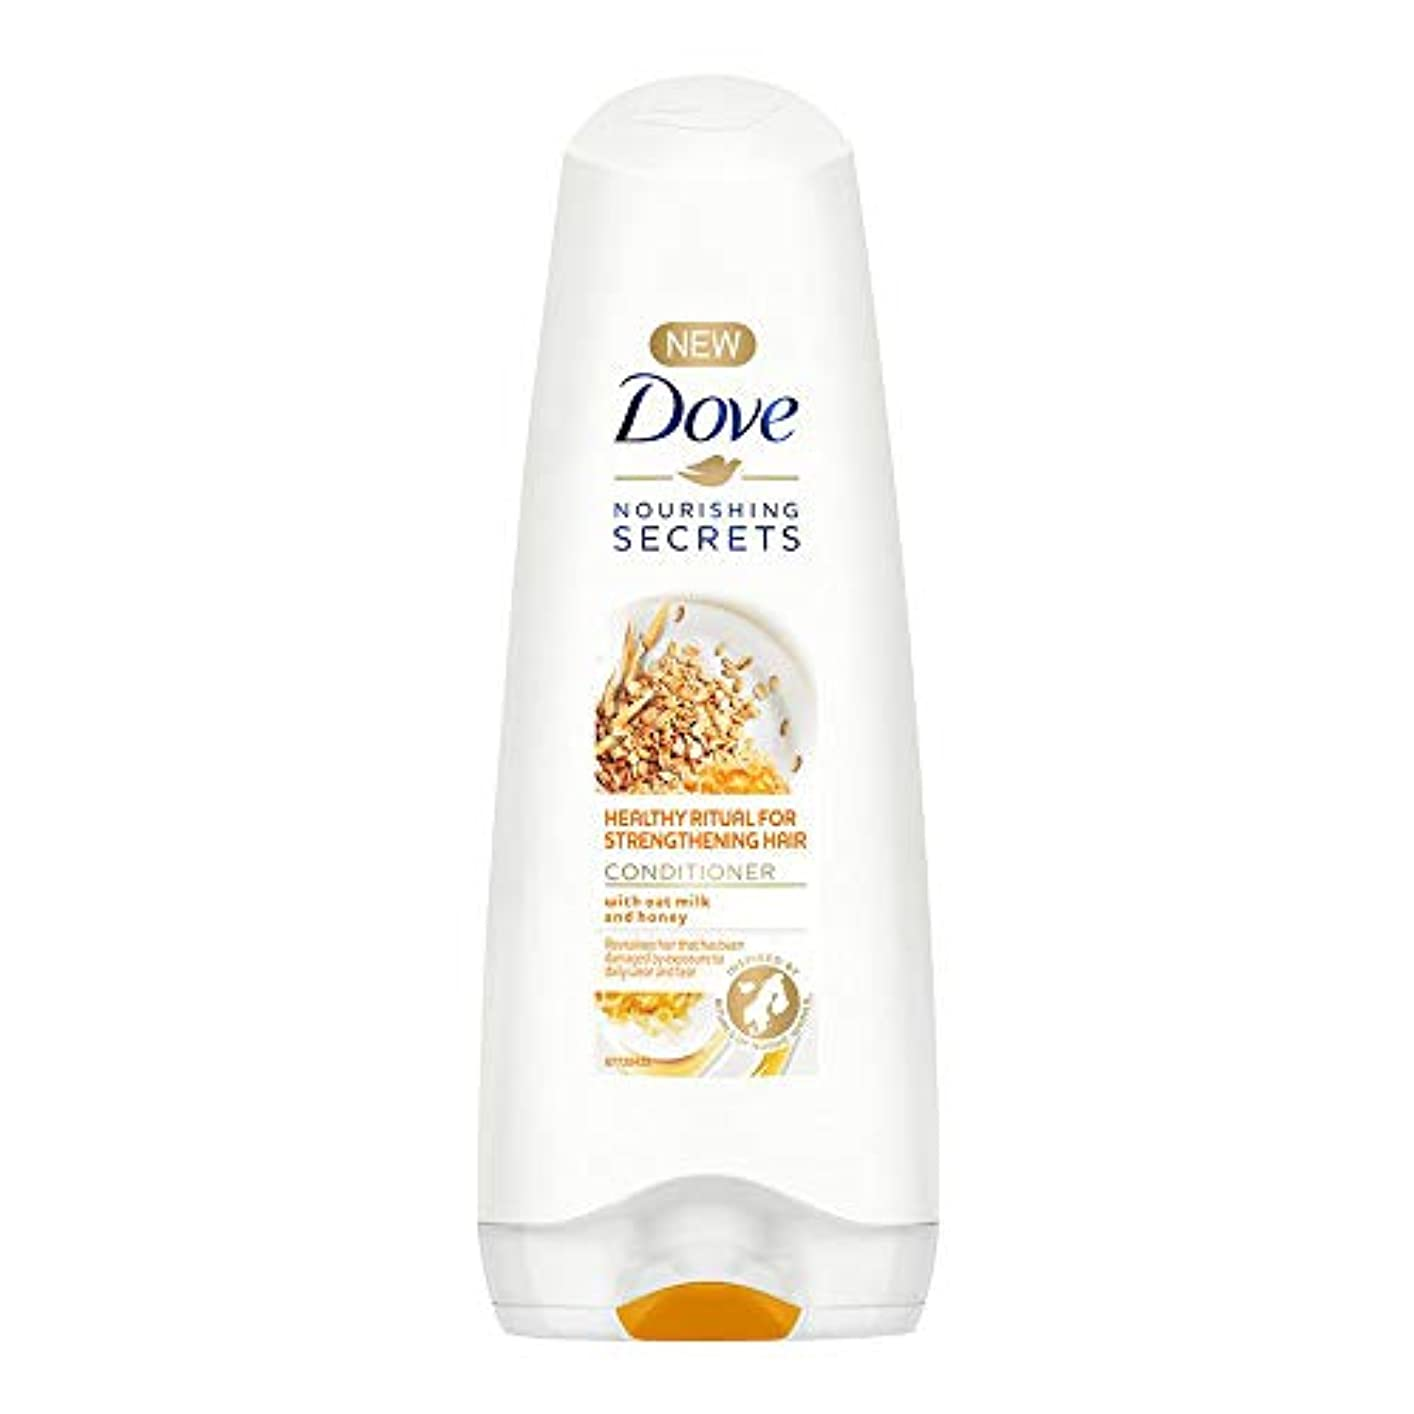 Dove Healthy Ritual for Strengthening Hair Conditioner, 180 ml (Oat Milk and Honey)